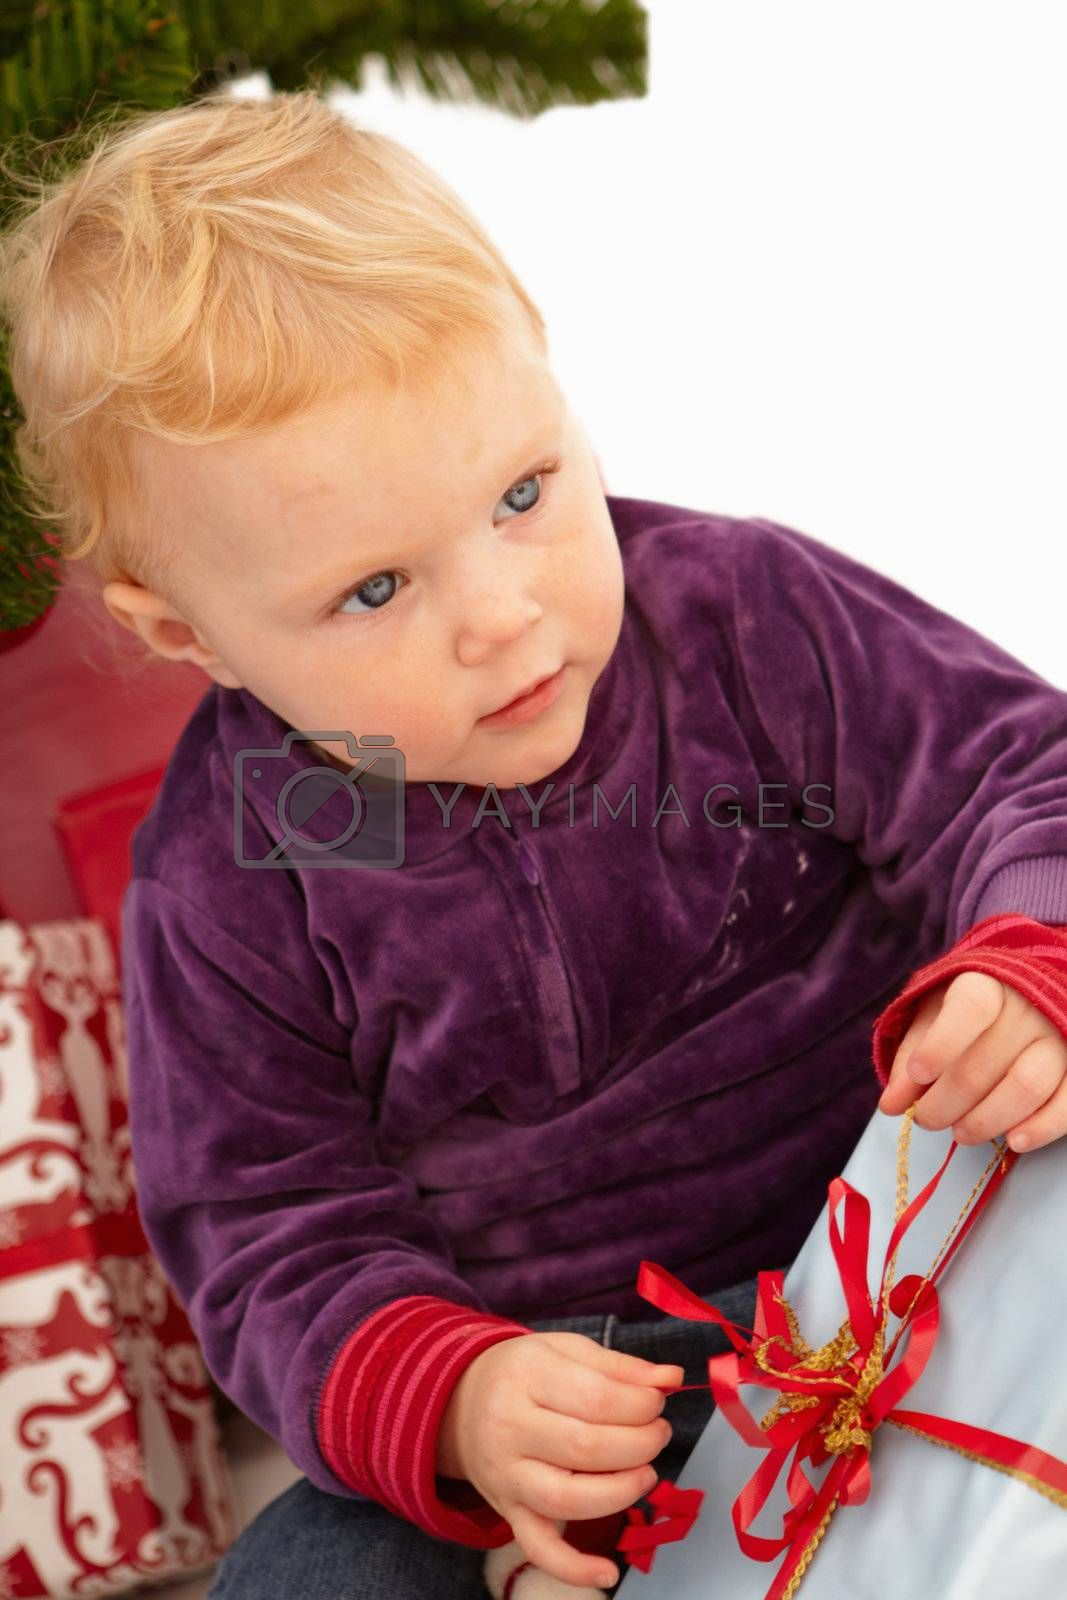 Royalty free image of Christmas - Cute child opening presents by FreedomImage